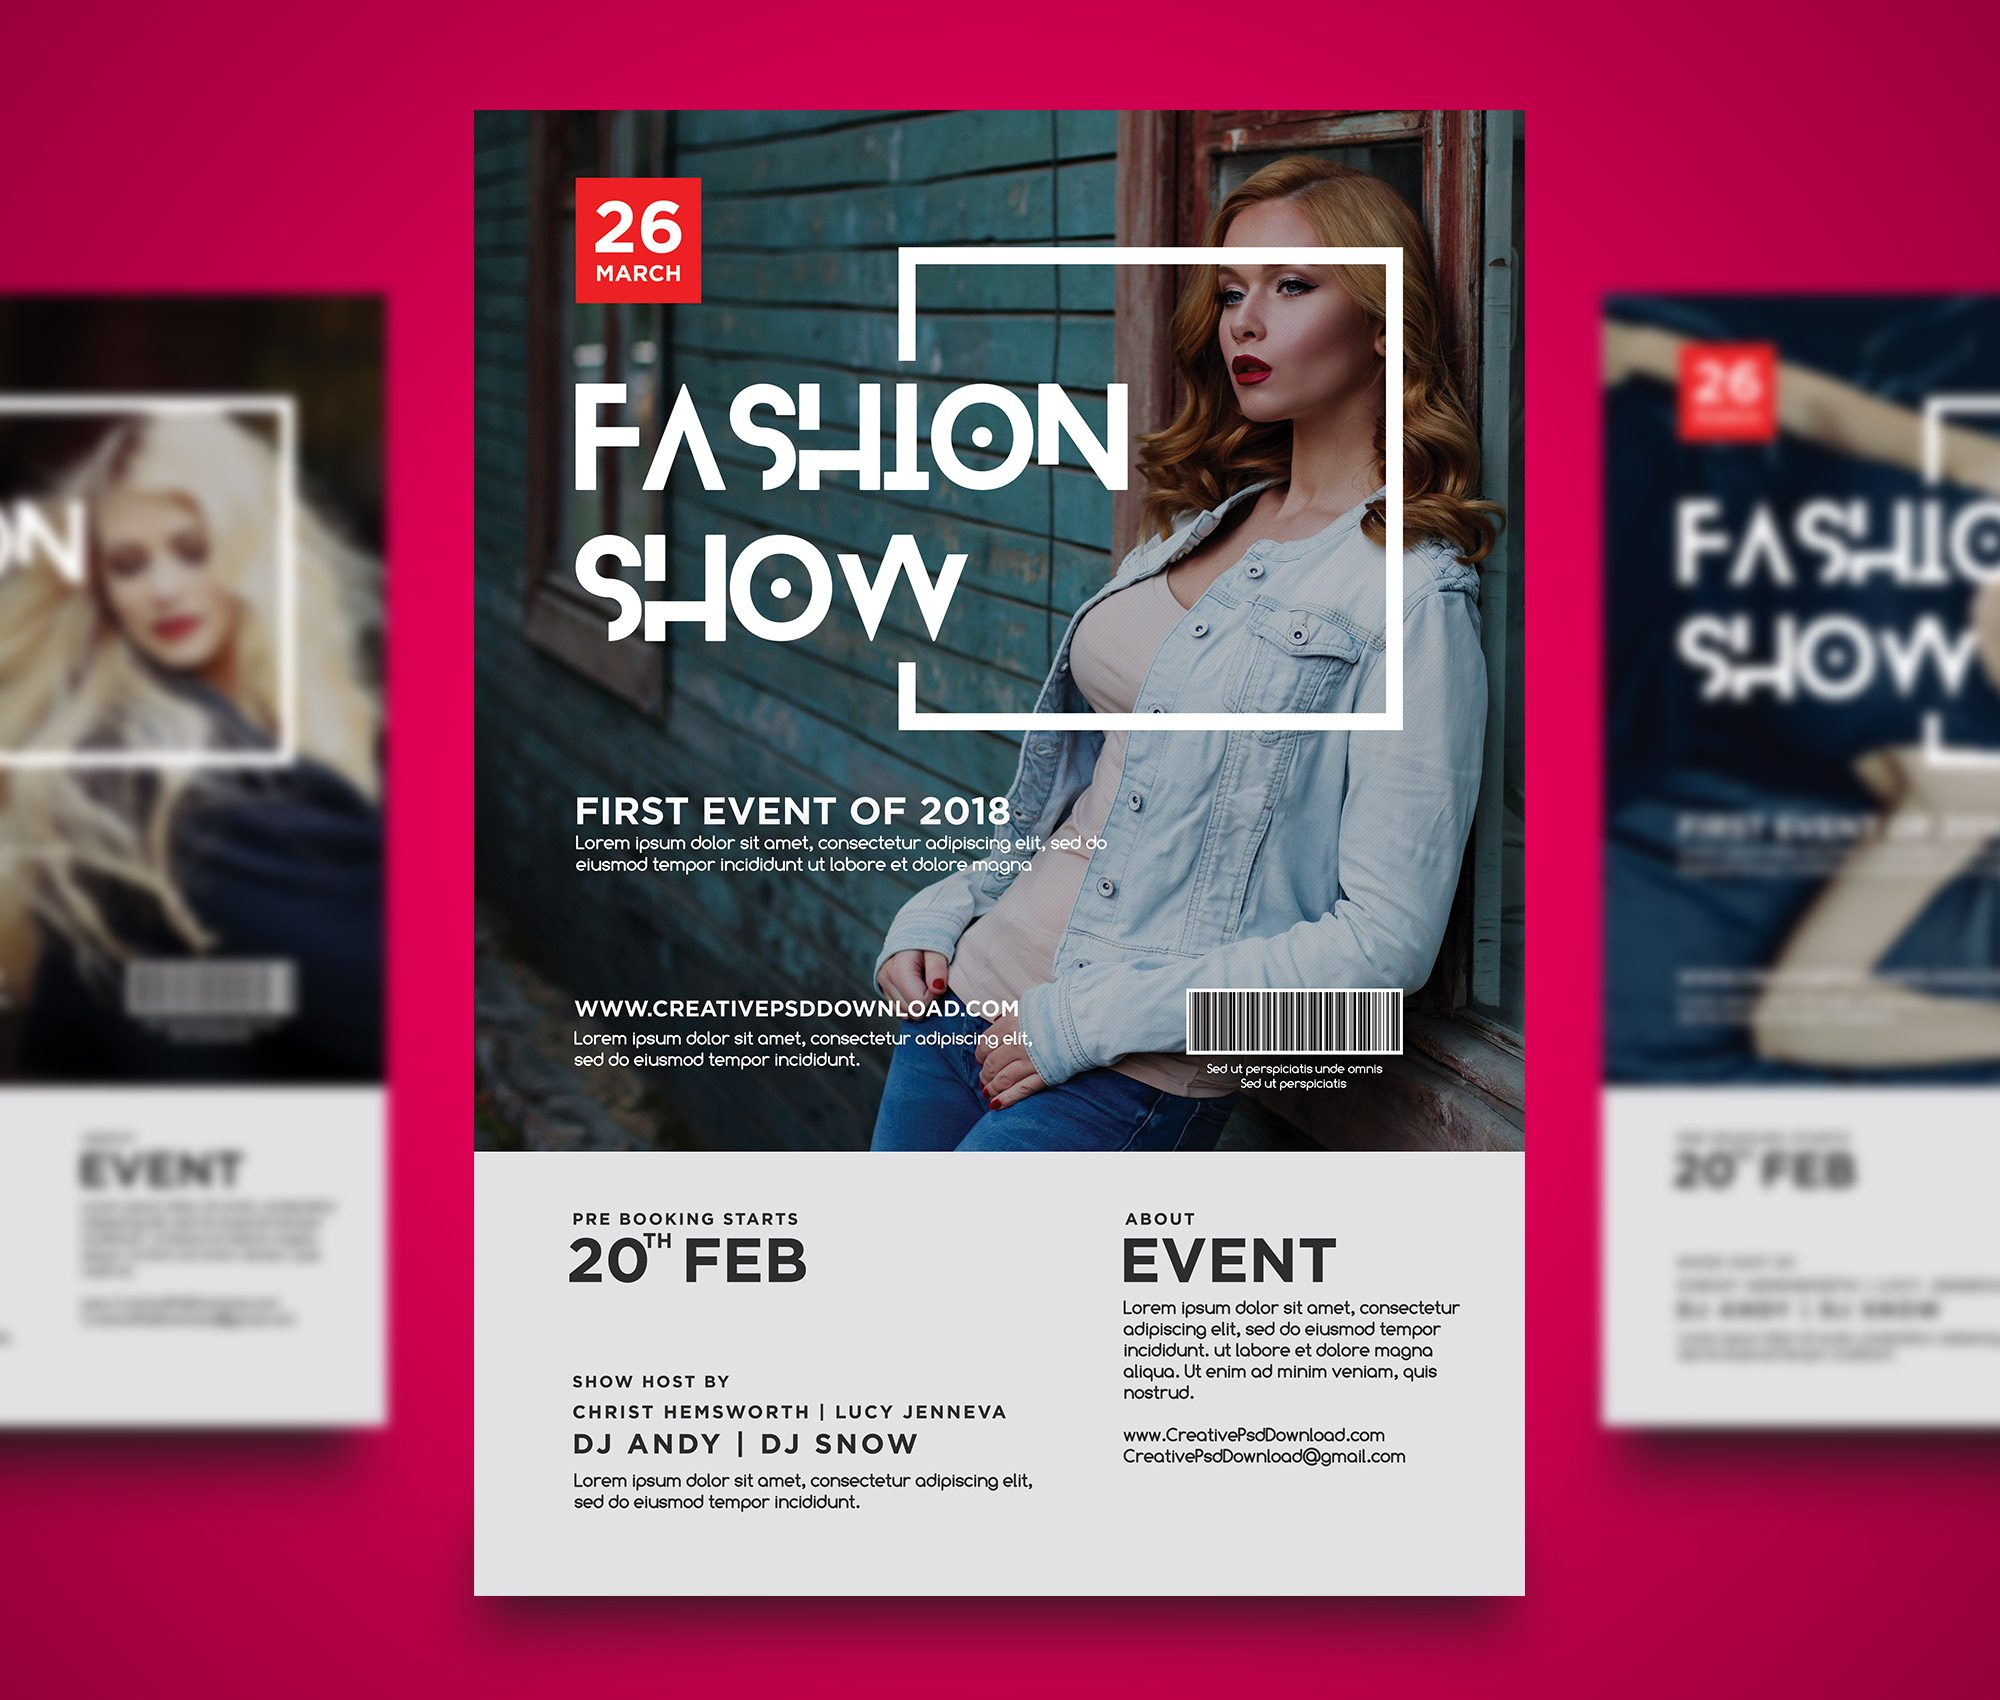 Fashion Show Flyer PSD Bundle Freebie